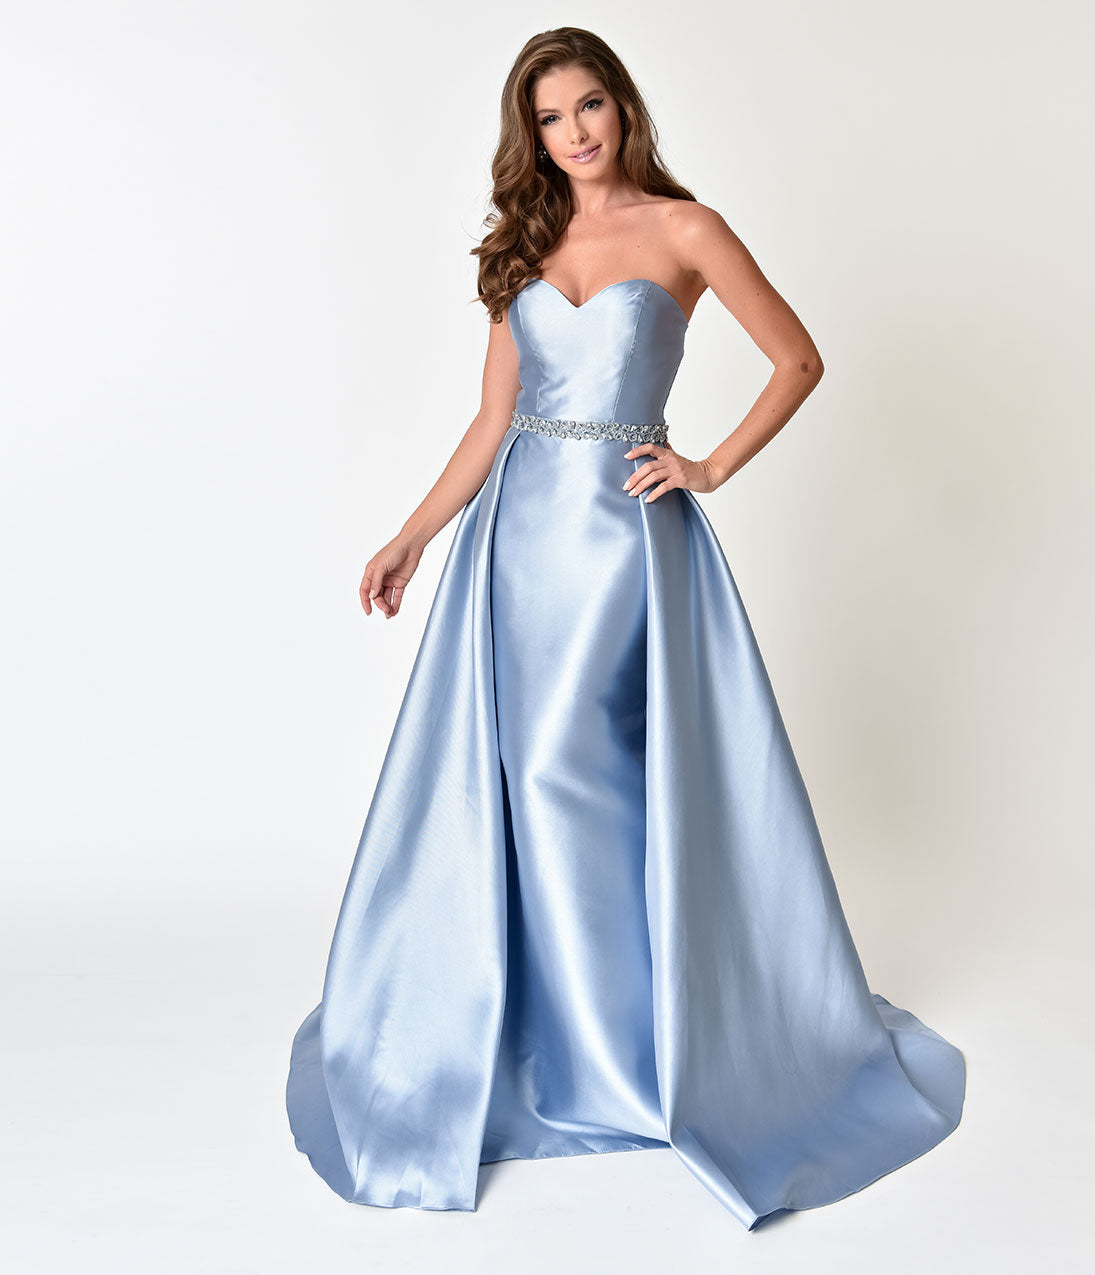 Vintage Evening Dresses and Formal Evening Gowns Perry Blue Strapless Sweetheart Neckline Satin Prom Gown $190.00 AT vintagedancer.com